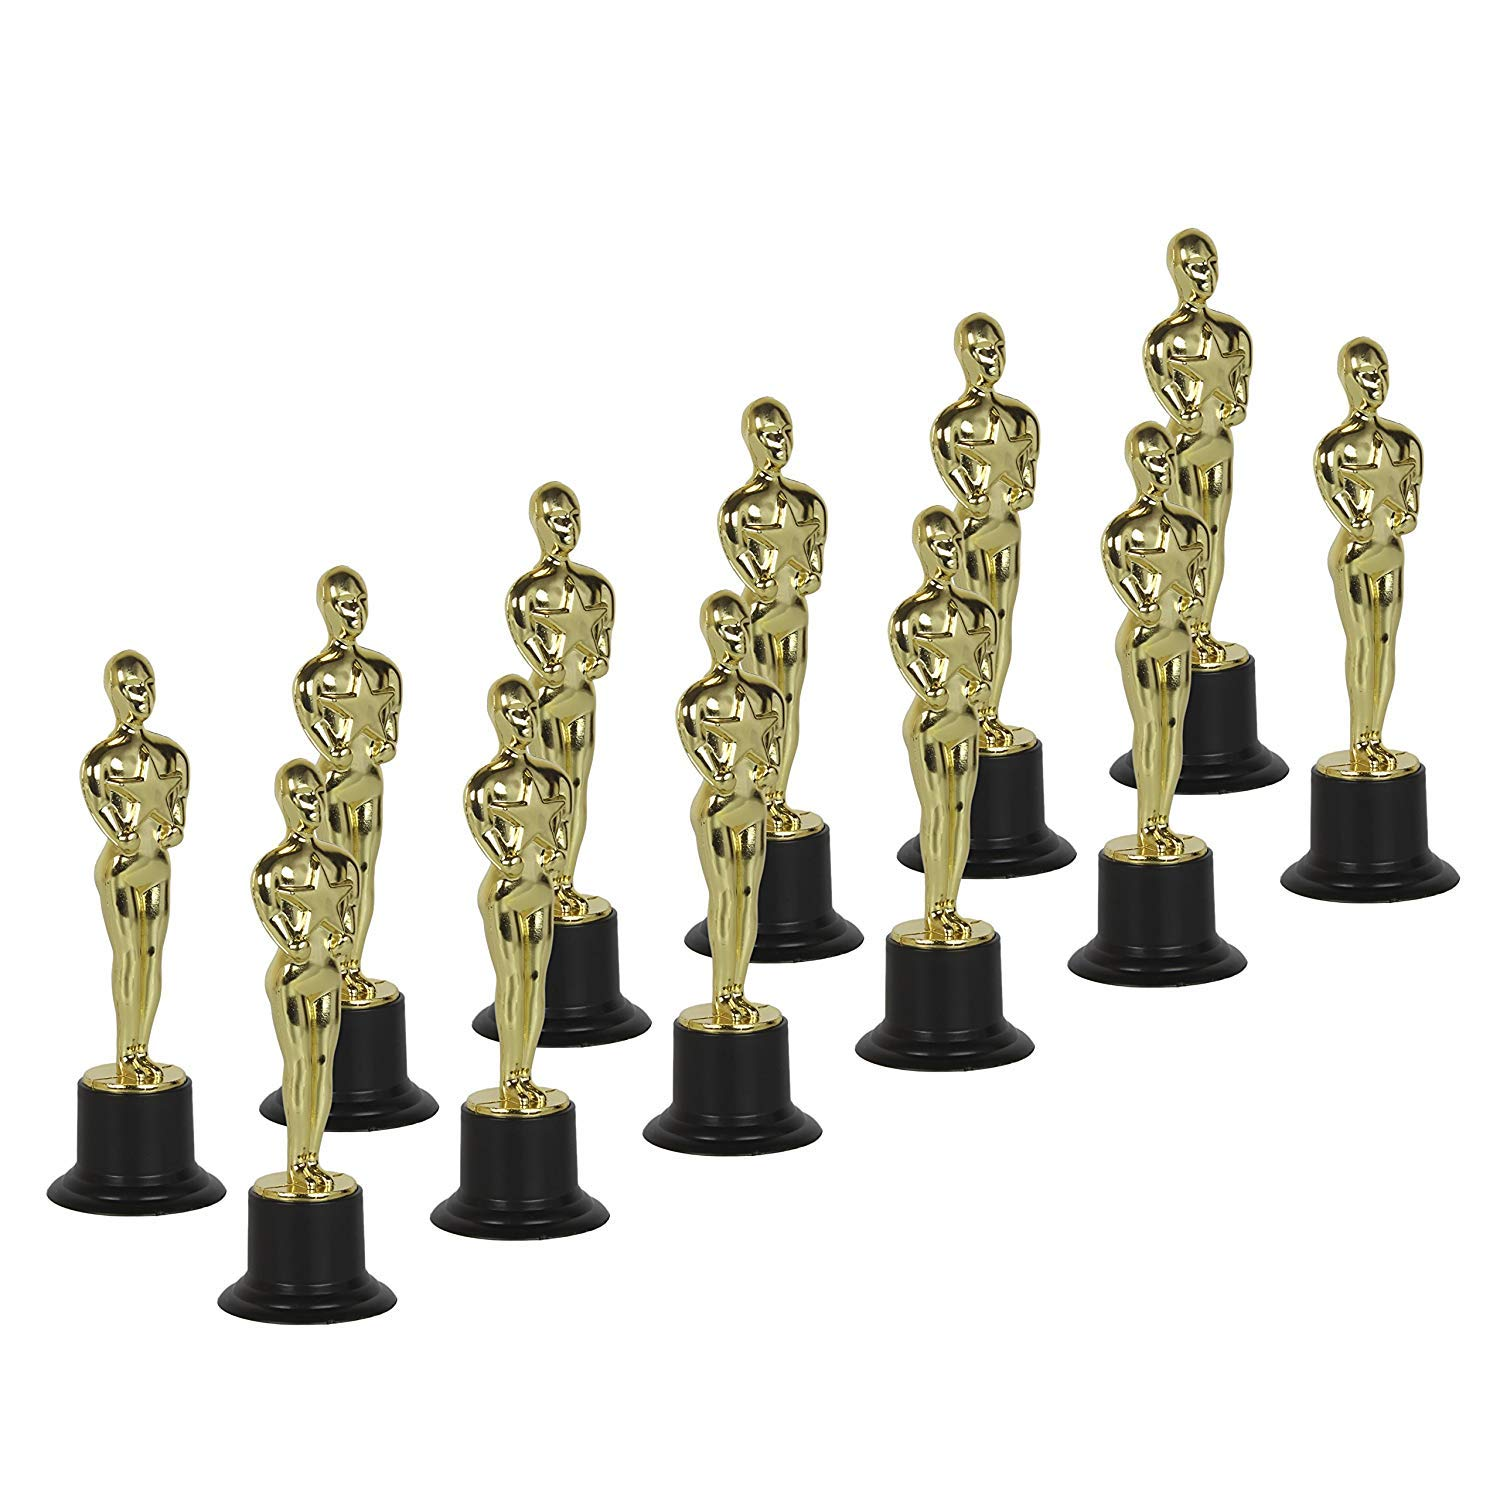 Blue Green Novelty Gold Award Trophies 6'' Trophy Statues, Academy Awards, Custom Trophies (Set of 12)